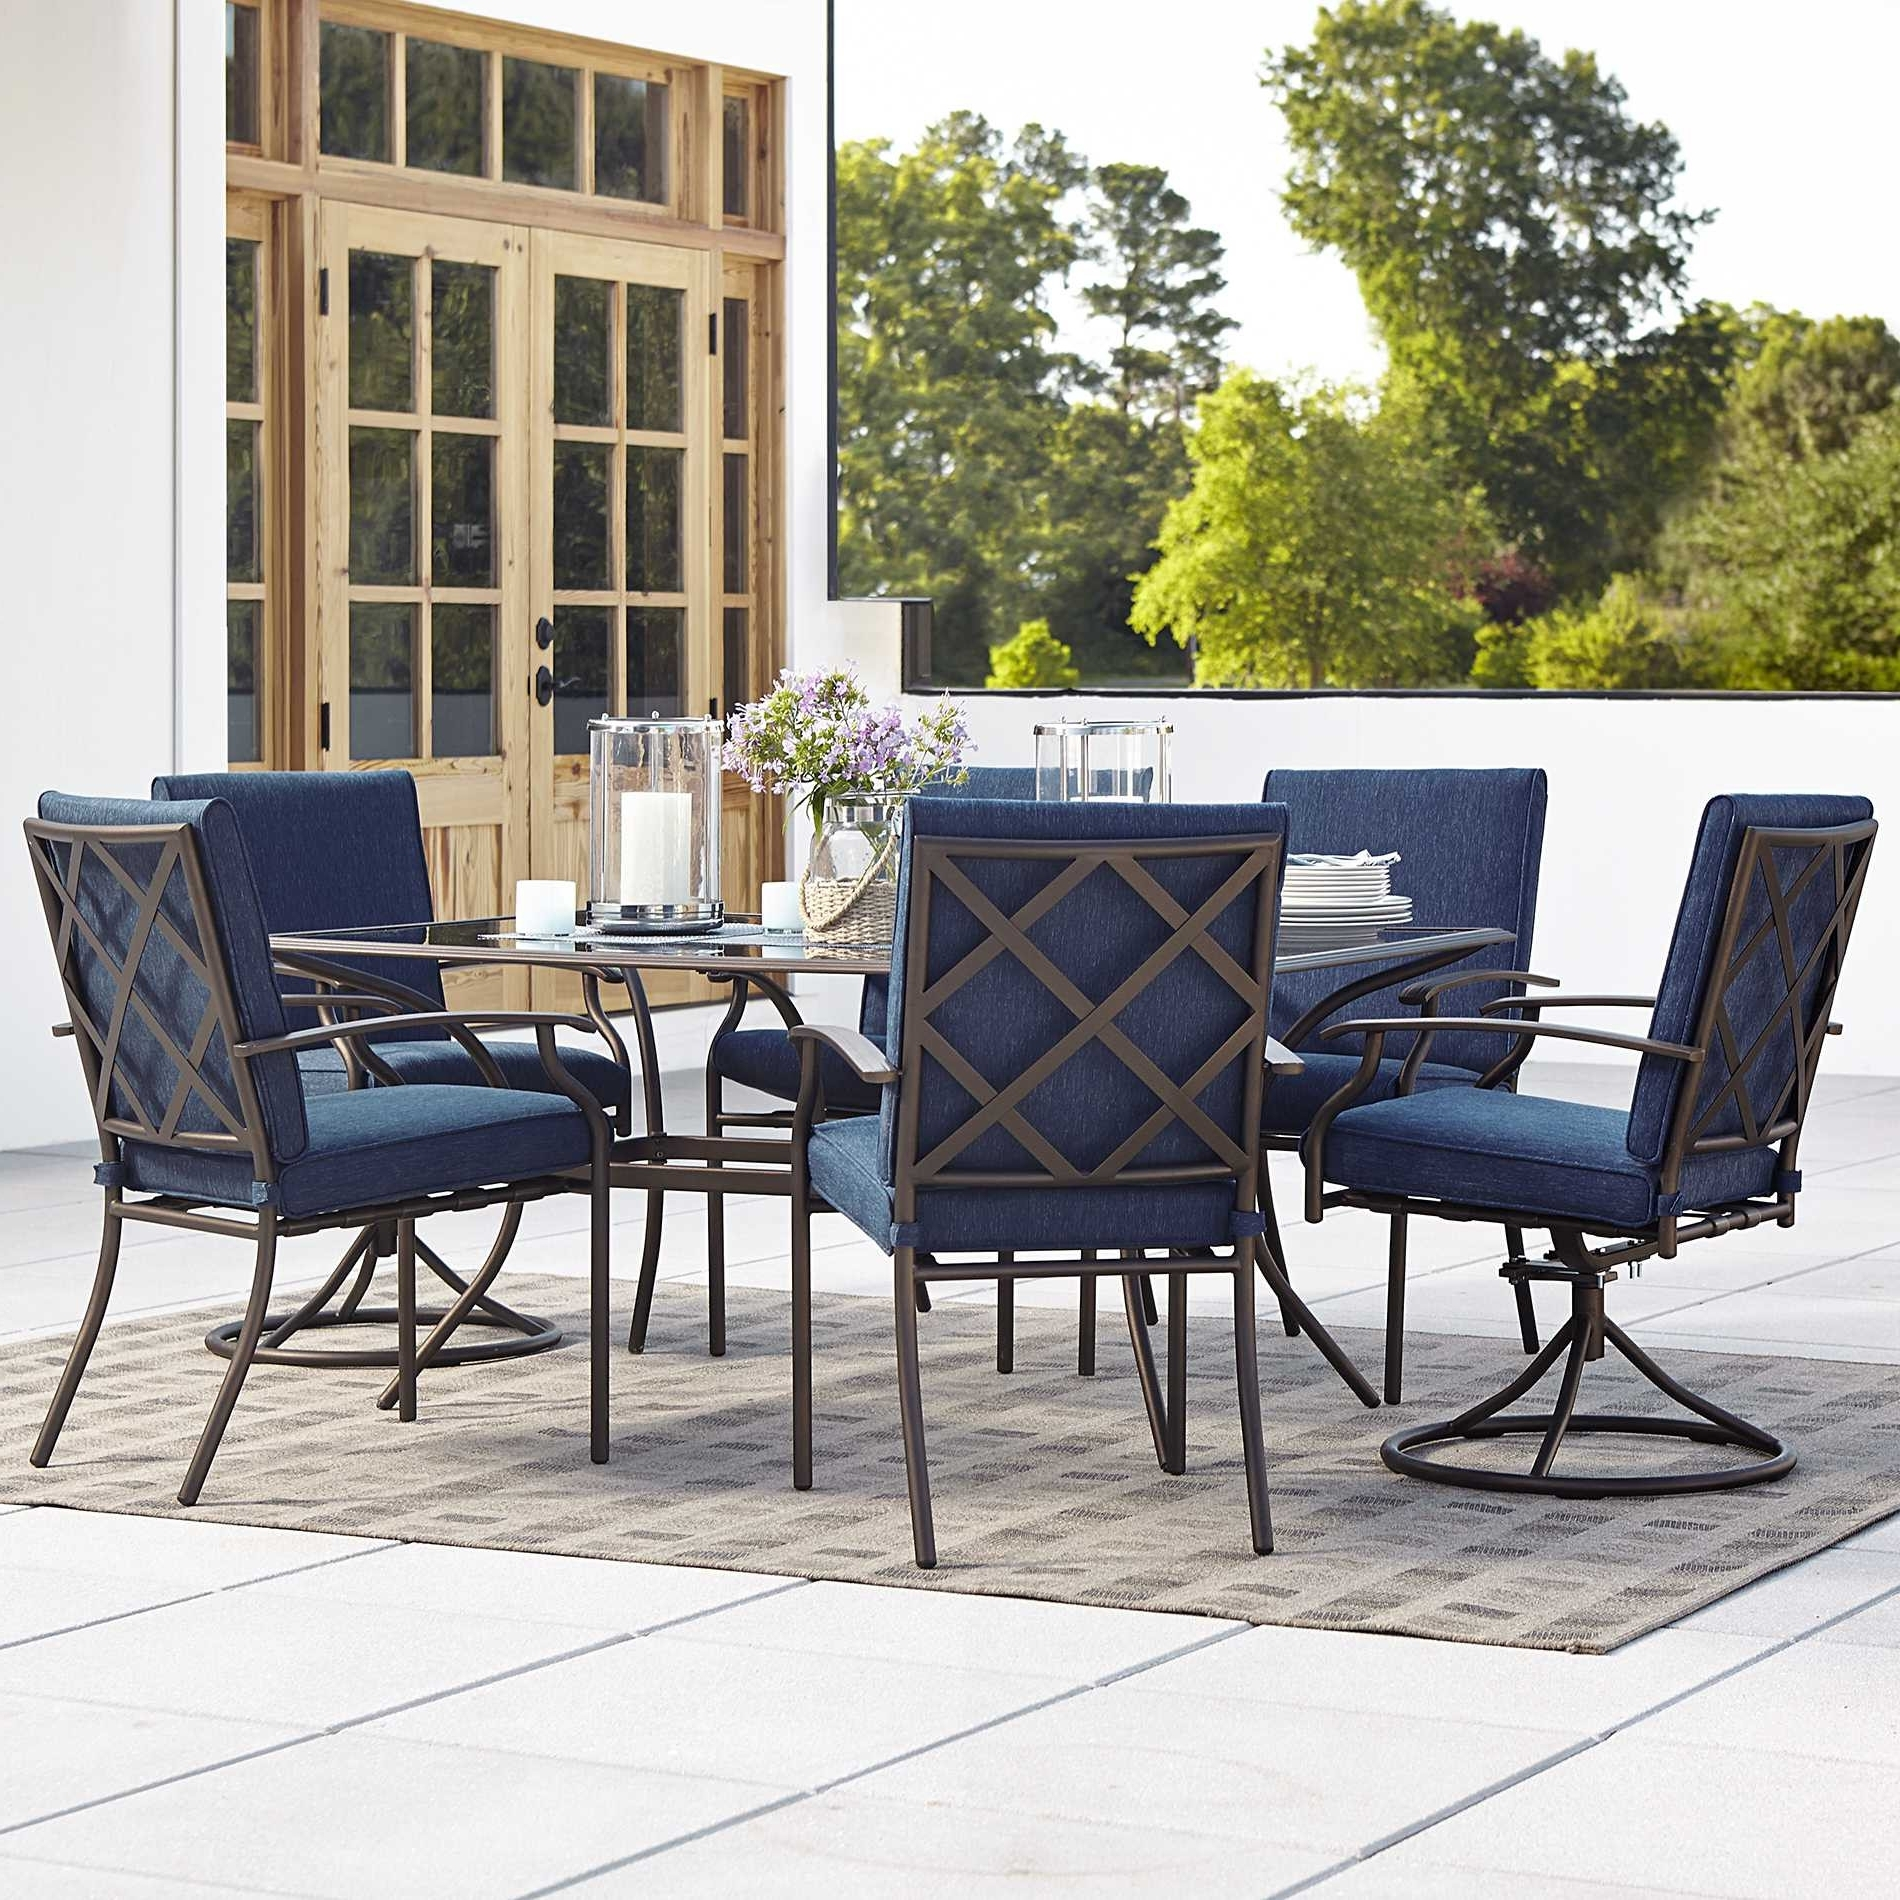 Trendy 30 Fresh Sears Outdoor Patio Furniture Ideas (View 15 of 20)